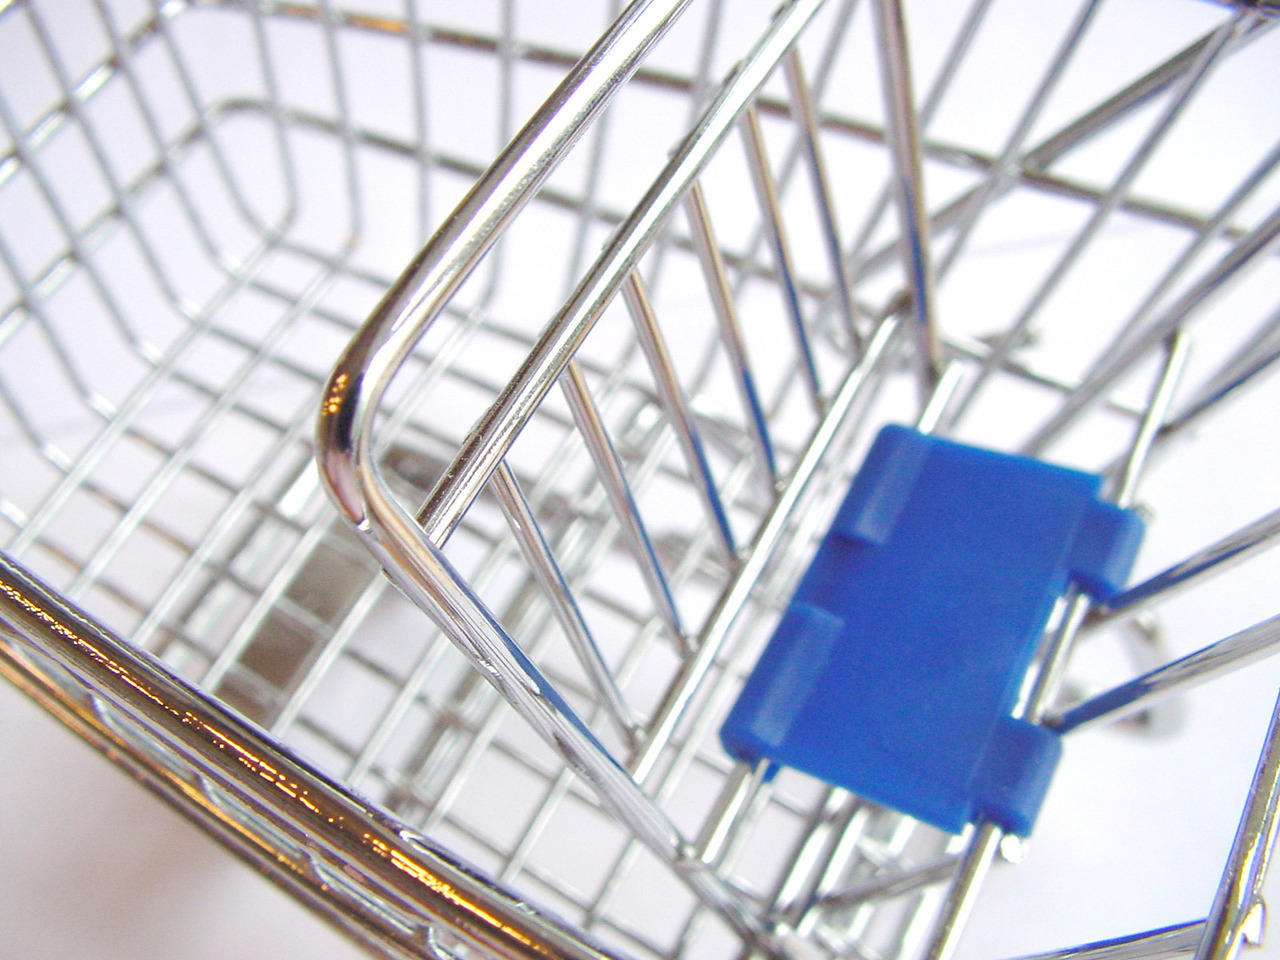 shopping-cart-3-1546160-1280x960